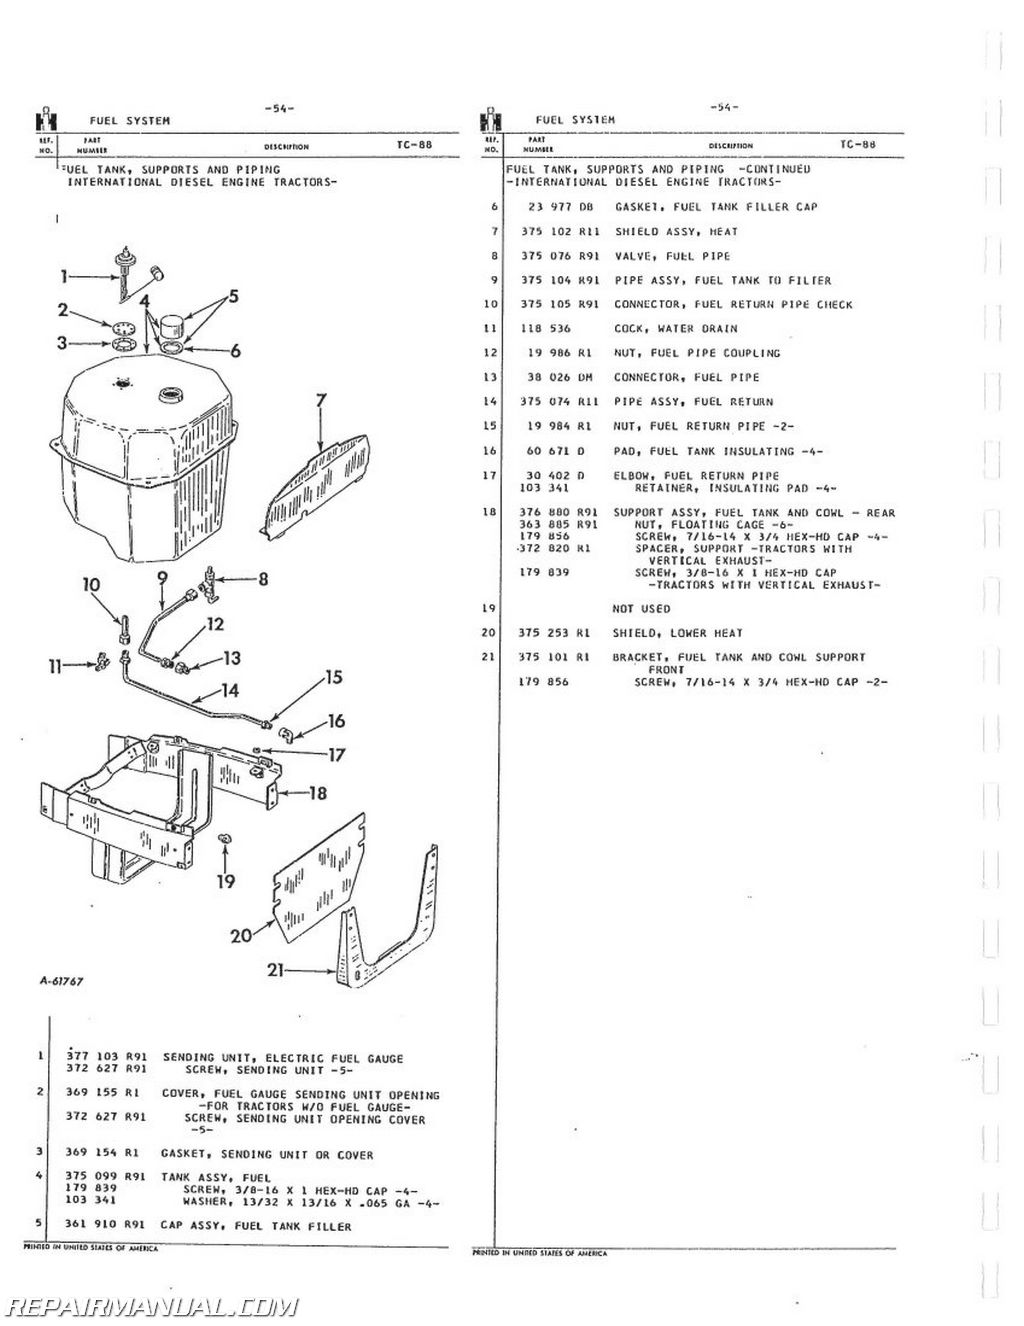 Easy Go Gas Golf Cart Wiring Diagram International Harvester 504 2504 Gas Lp And Dsl Parts Manual